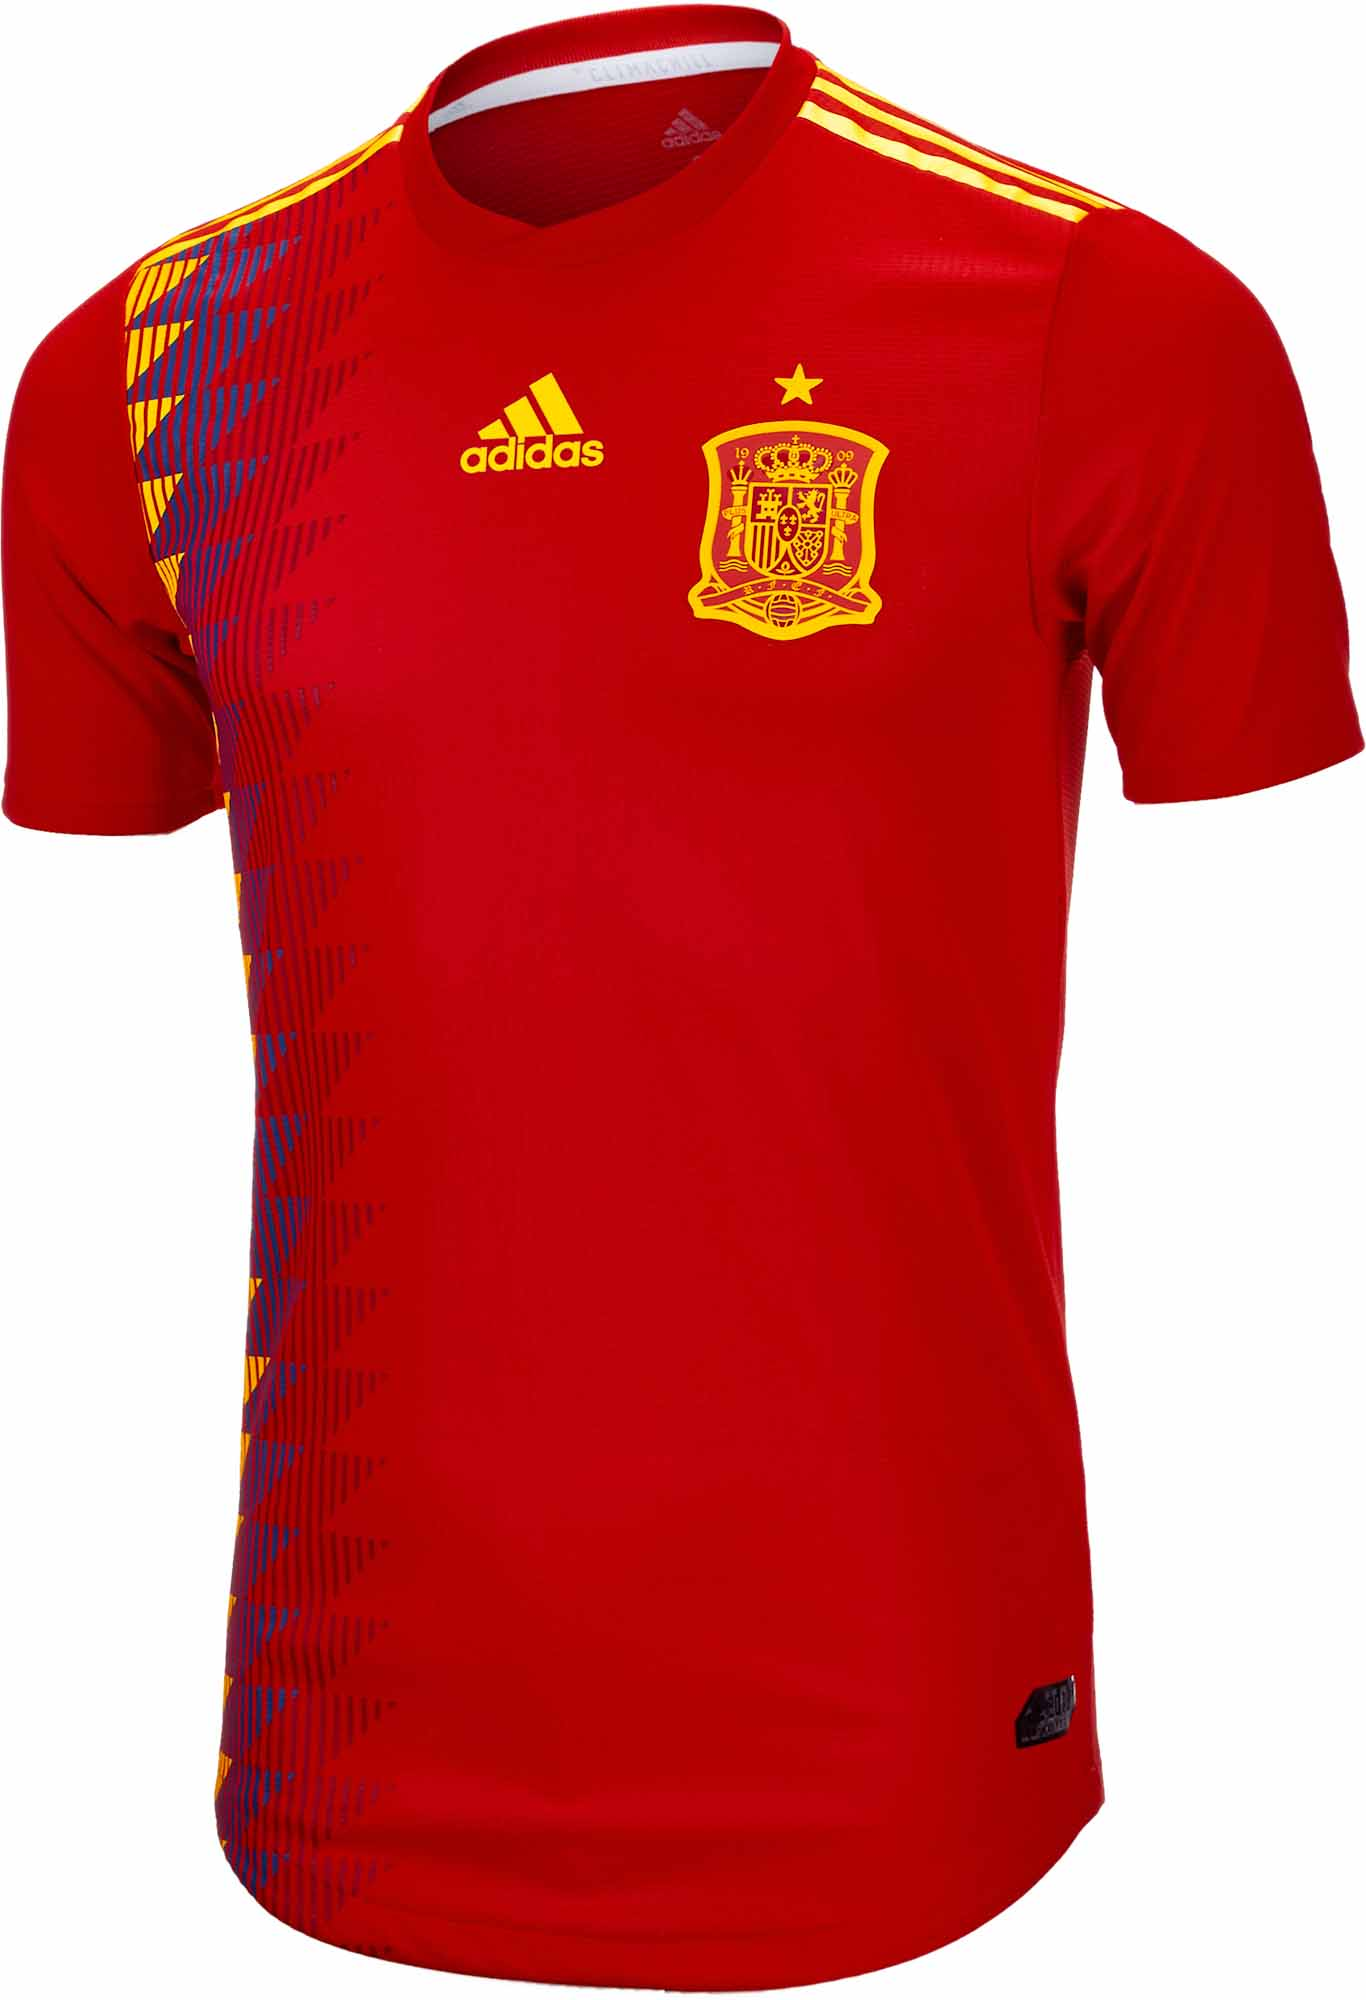 2018/19 adidas Spain Authentic Home Jersey - Soccer Master - photo#39